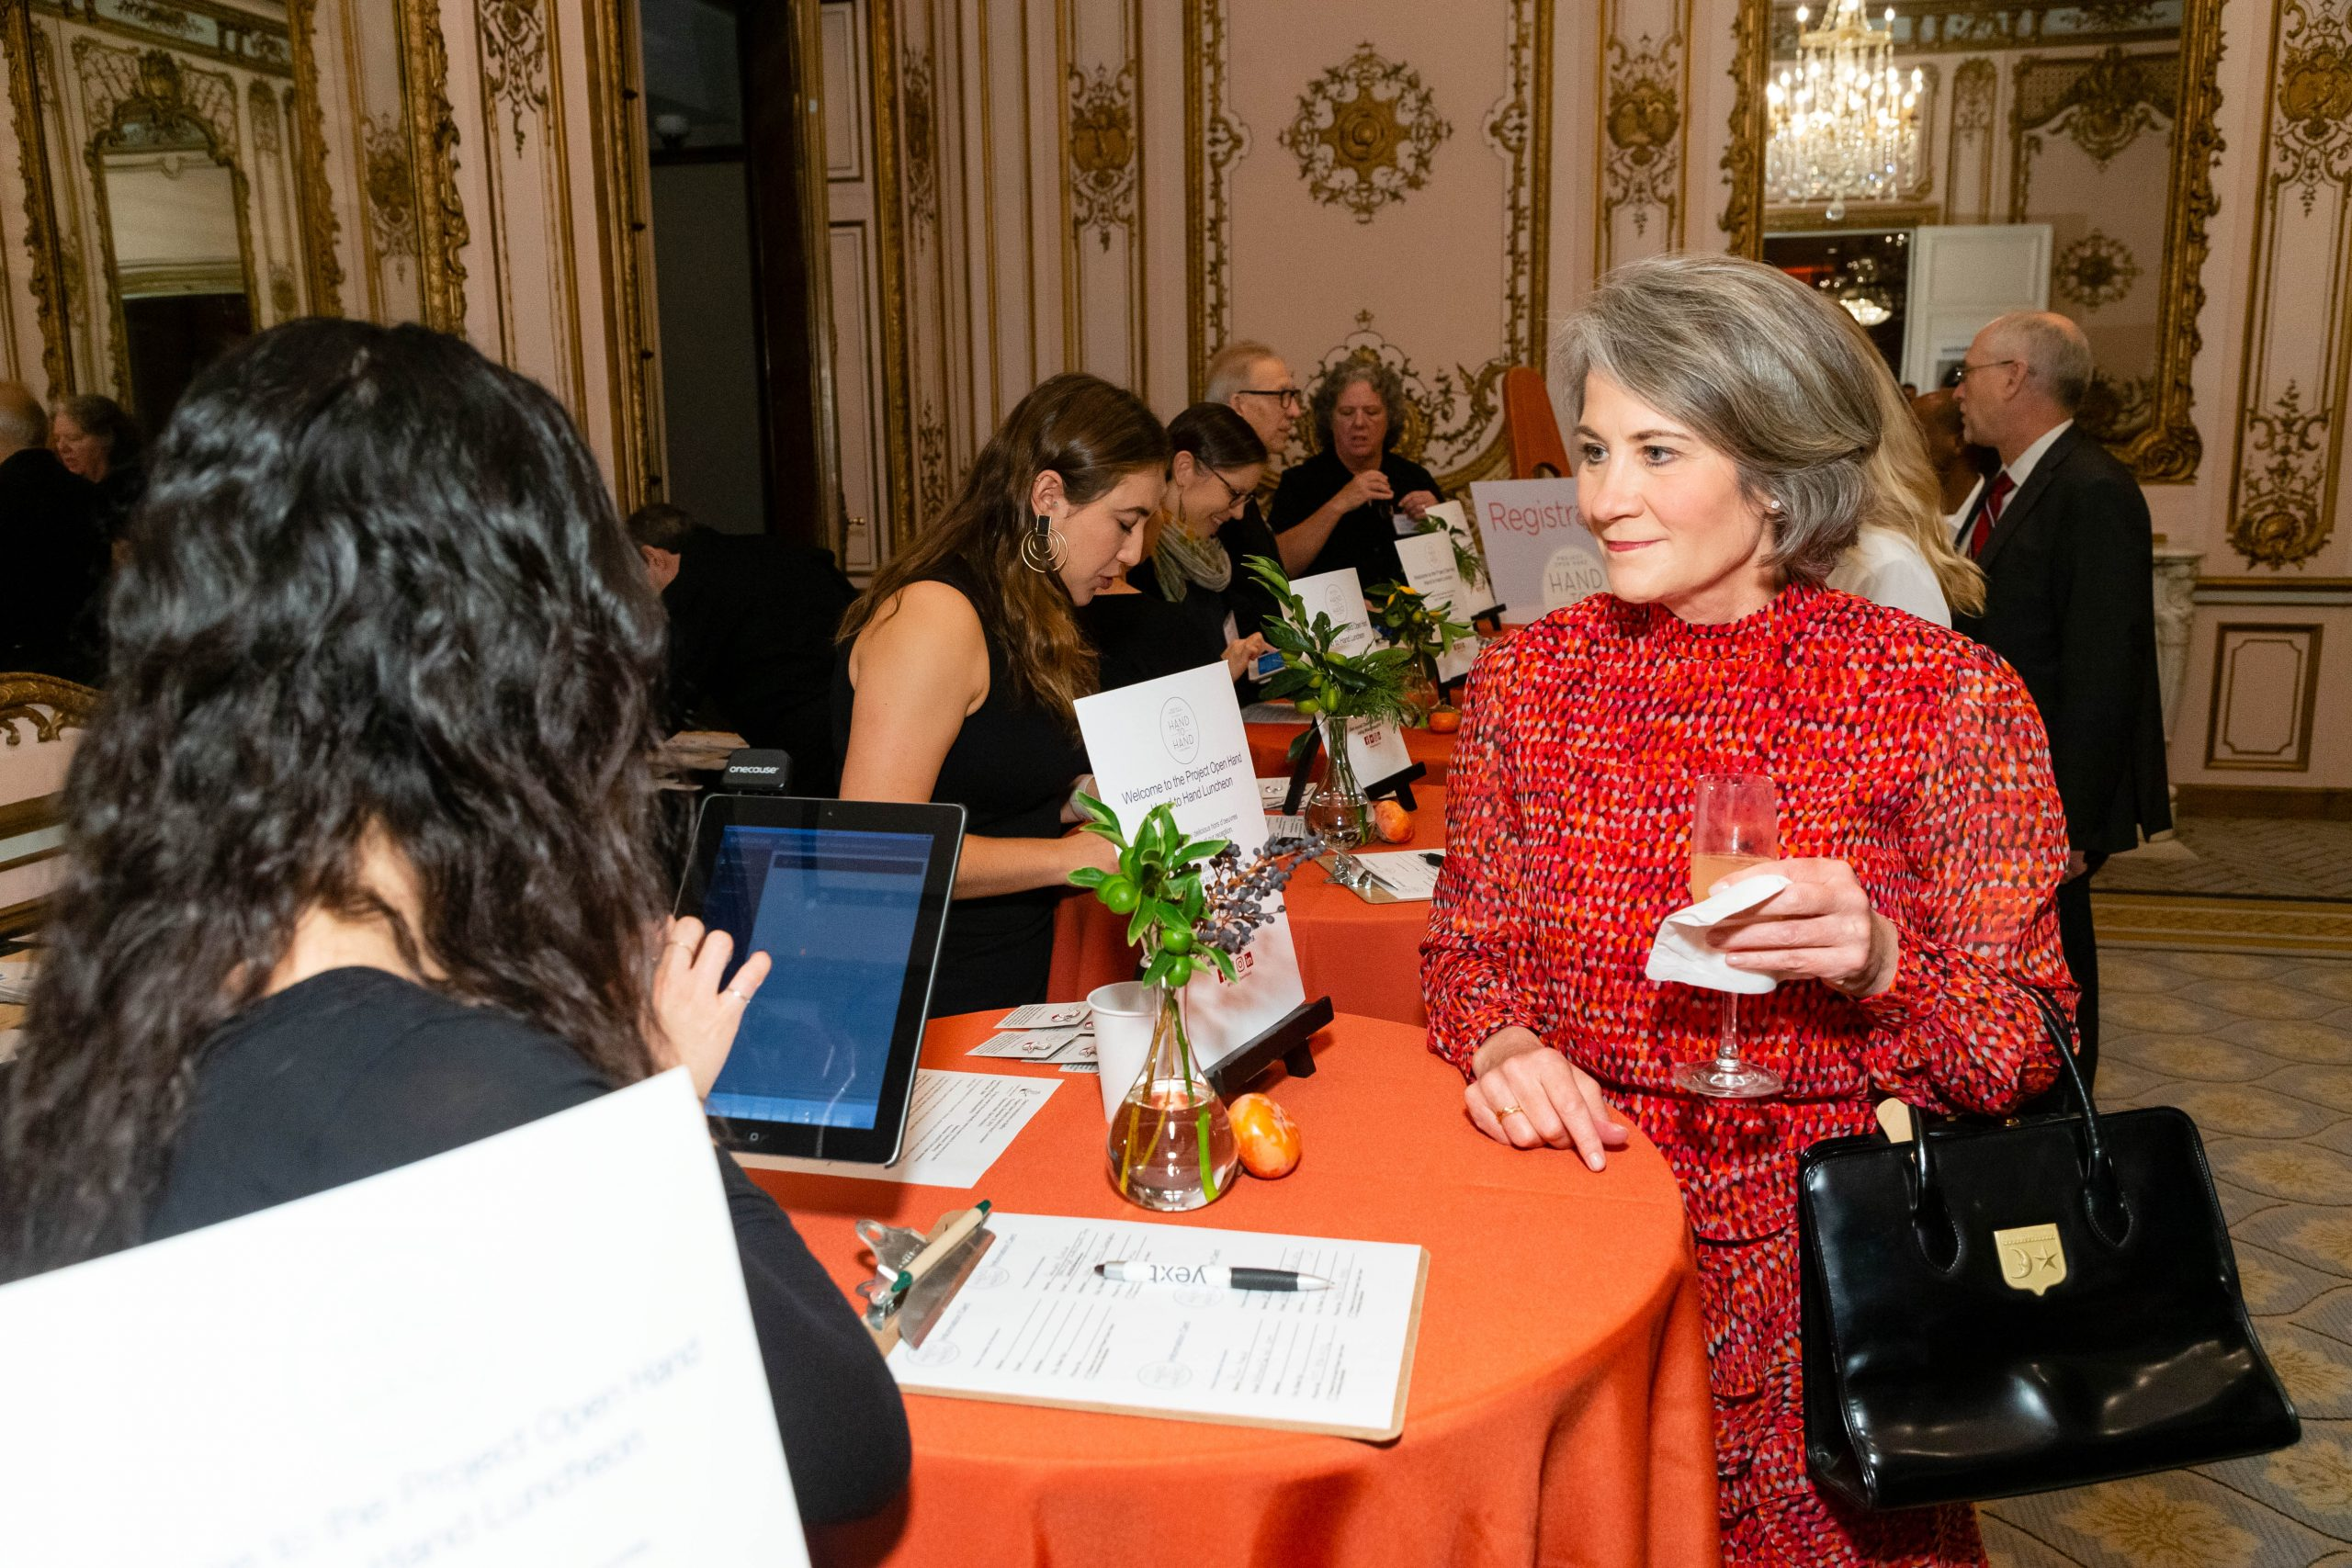 A guest in a red dress holding a drink and someone seen from their back typing on a tablet.